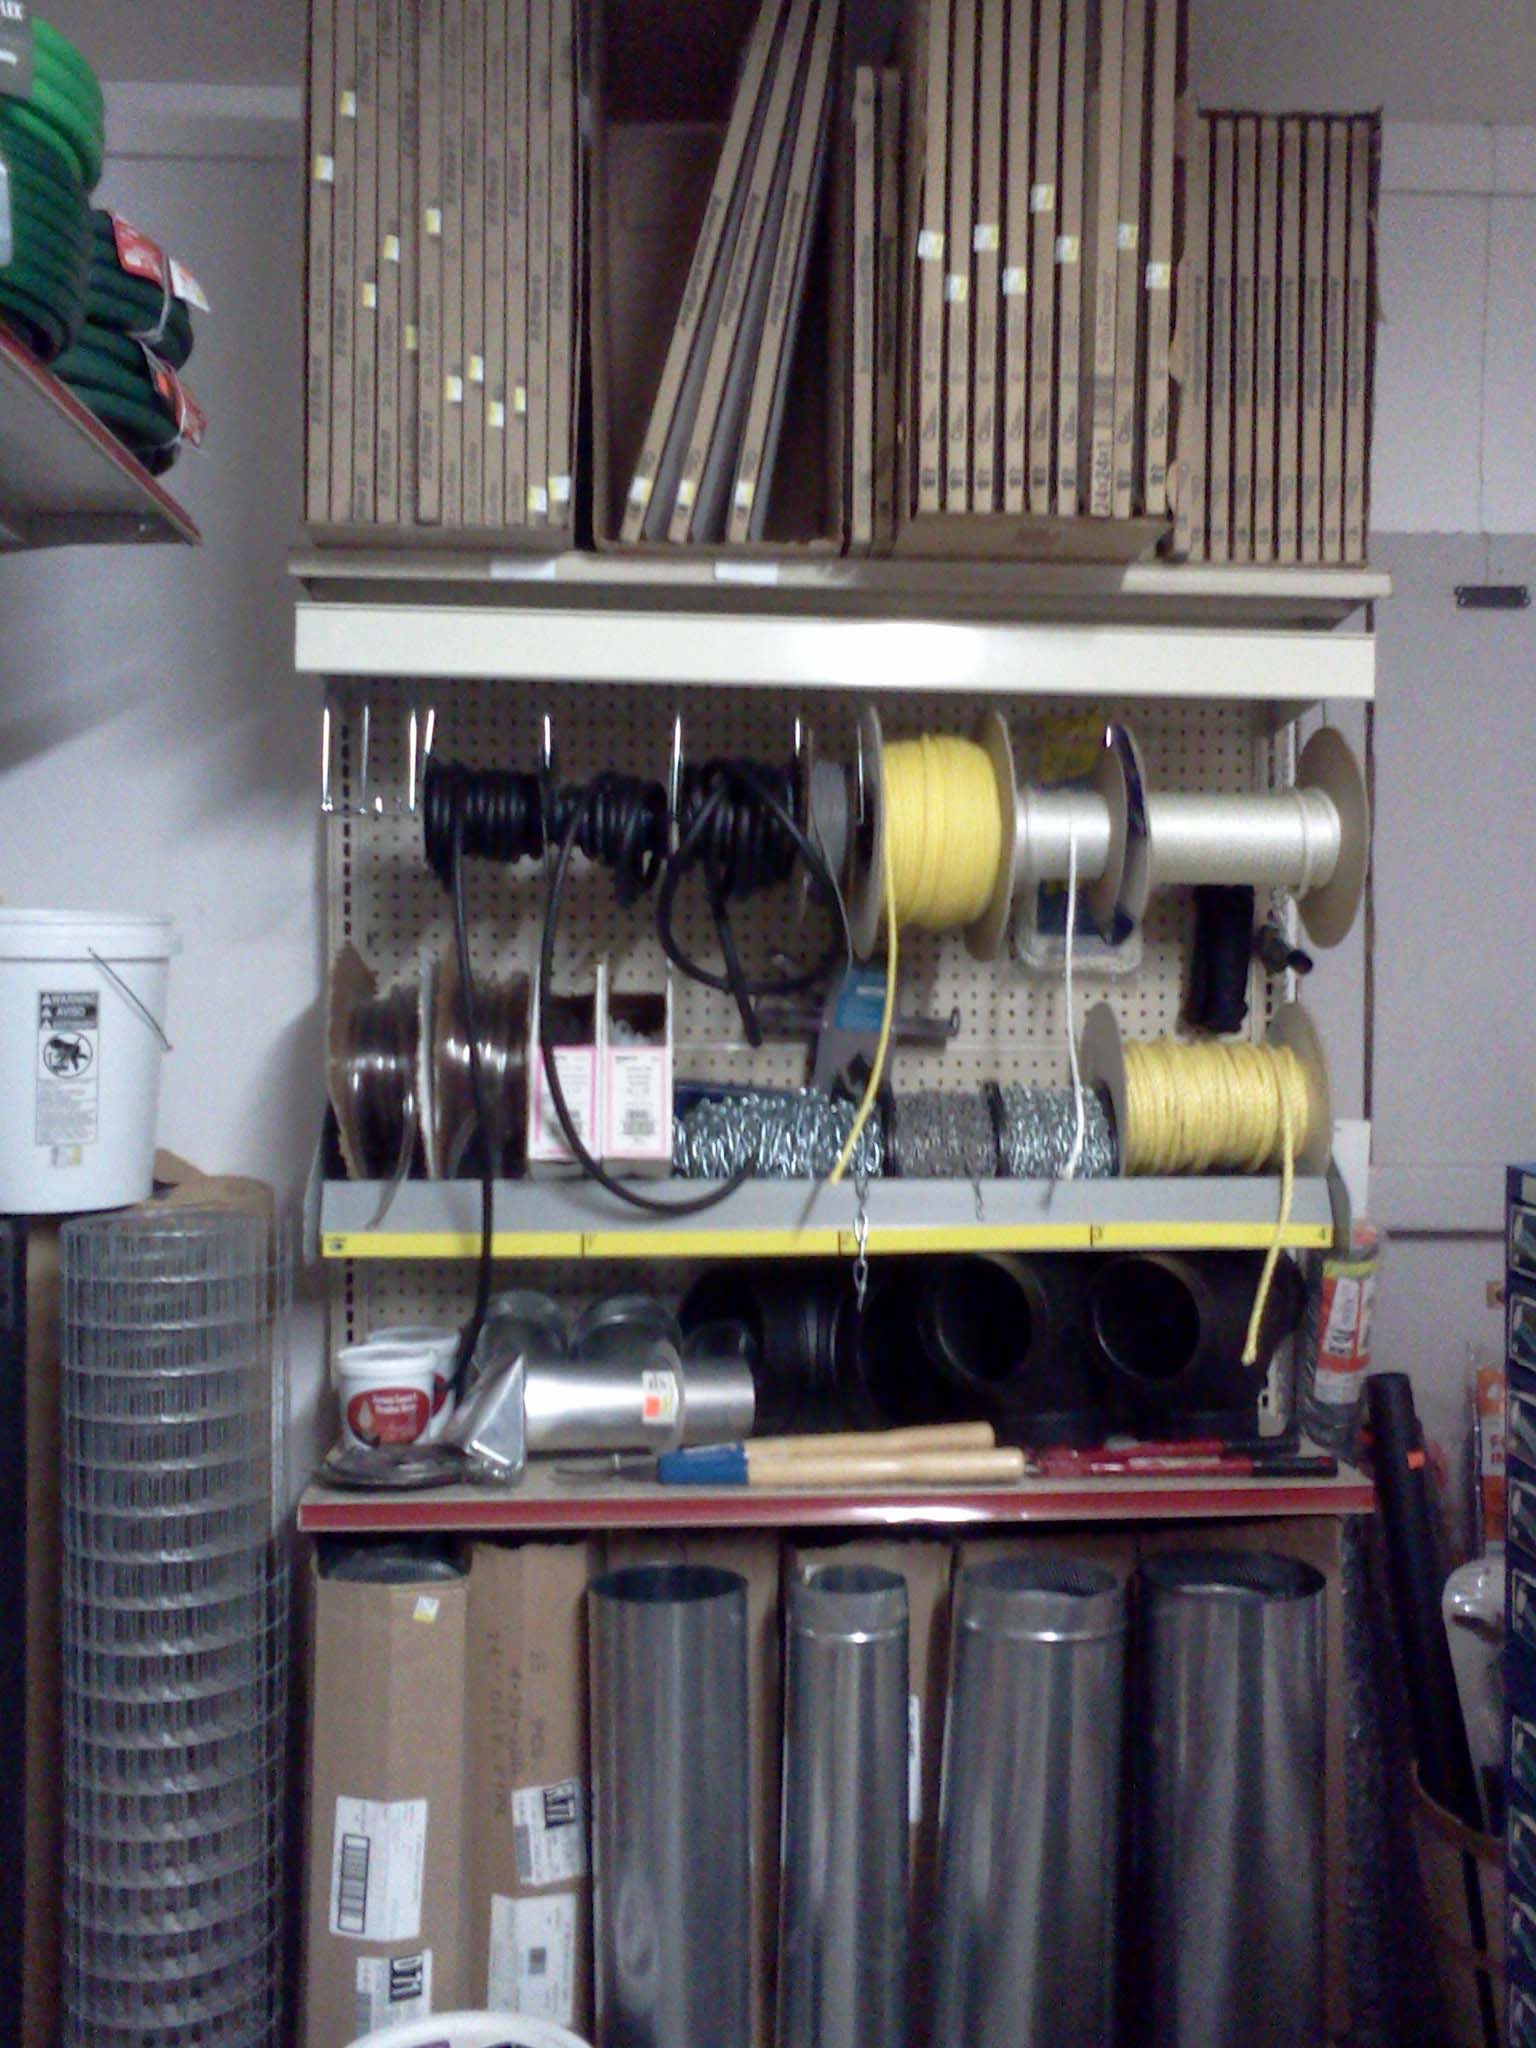 furnace filters, rope/chain, stove pipe